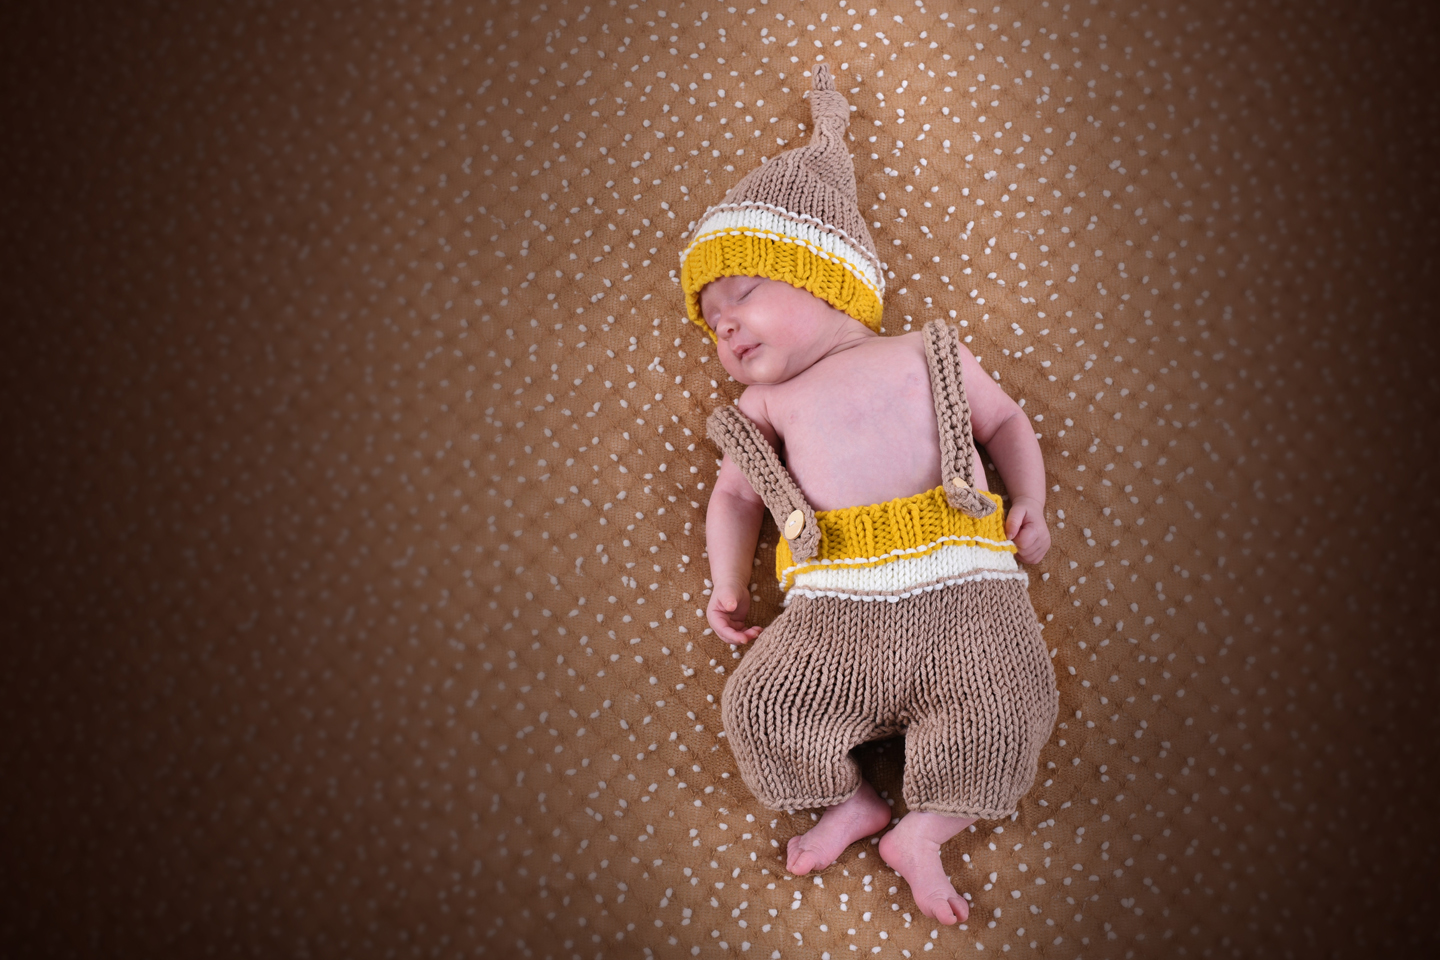 Baby and Newborn Photography in Melbourne - Natalie Newborn Baby photo 8